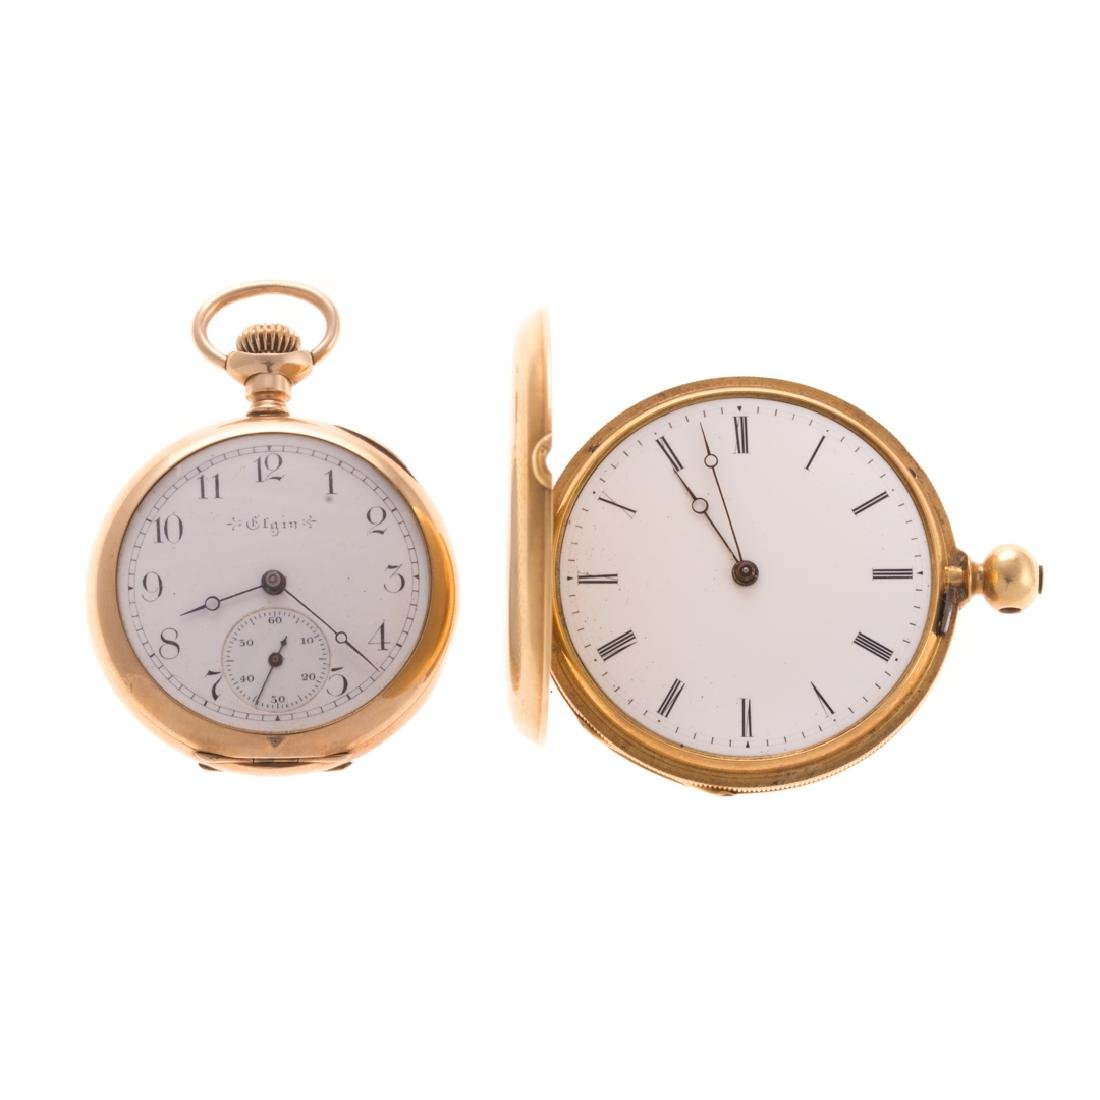 A Pair of Lady's Engraved Pocket Watches